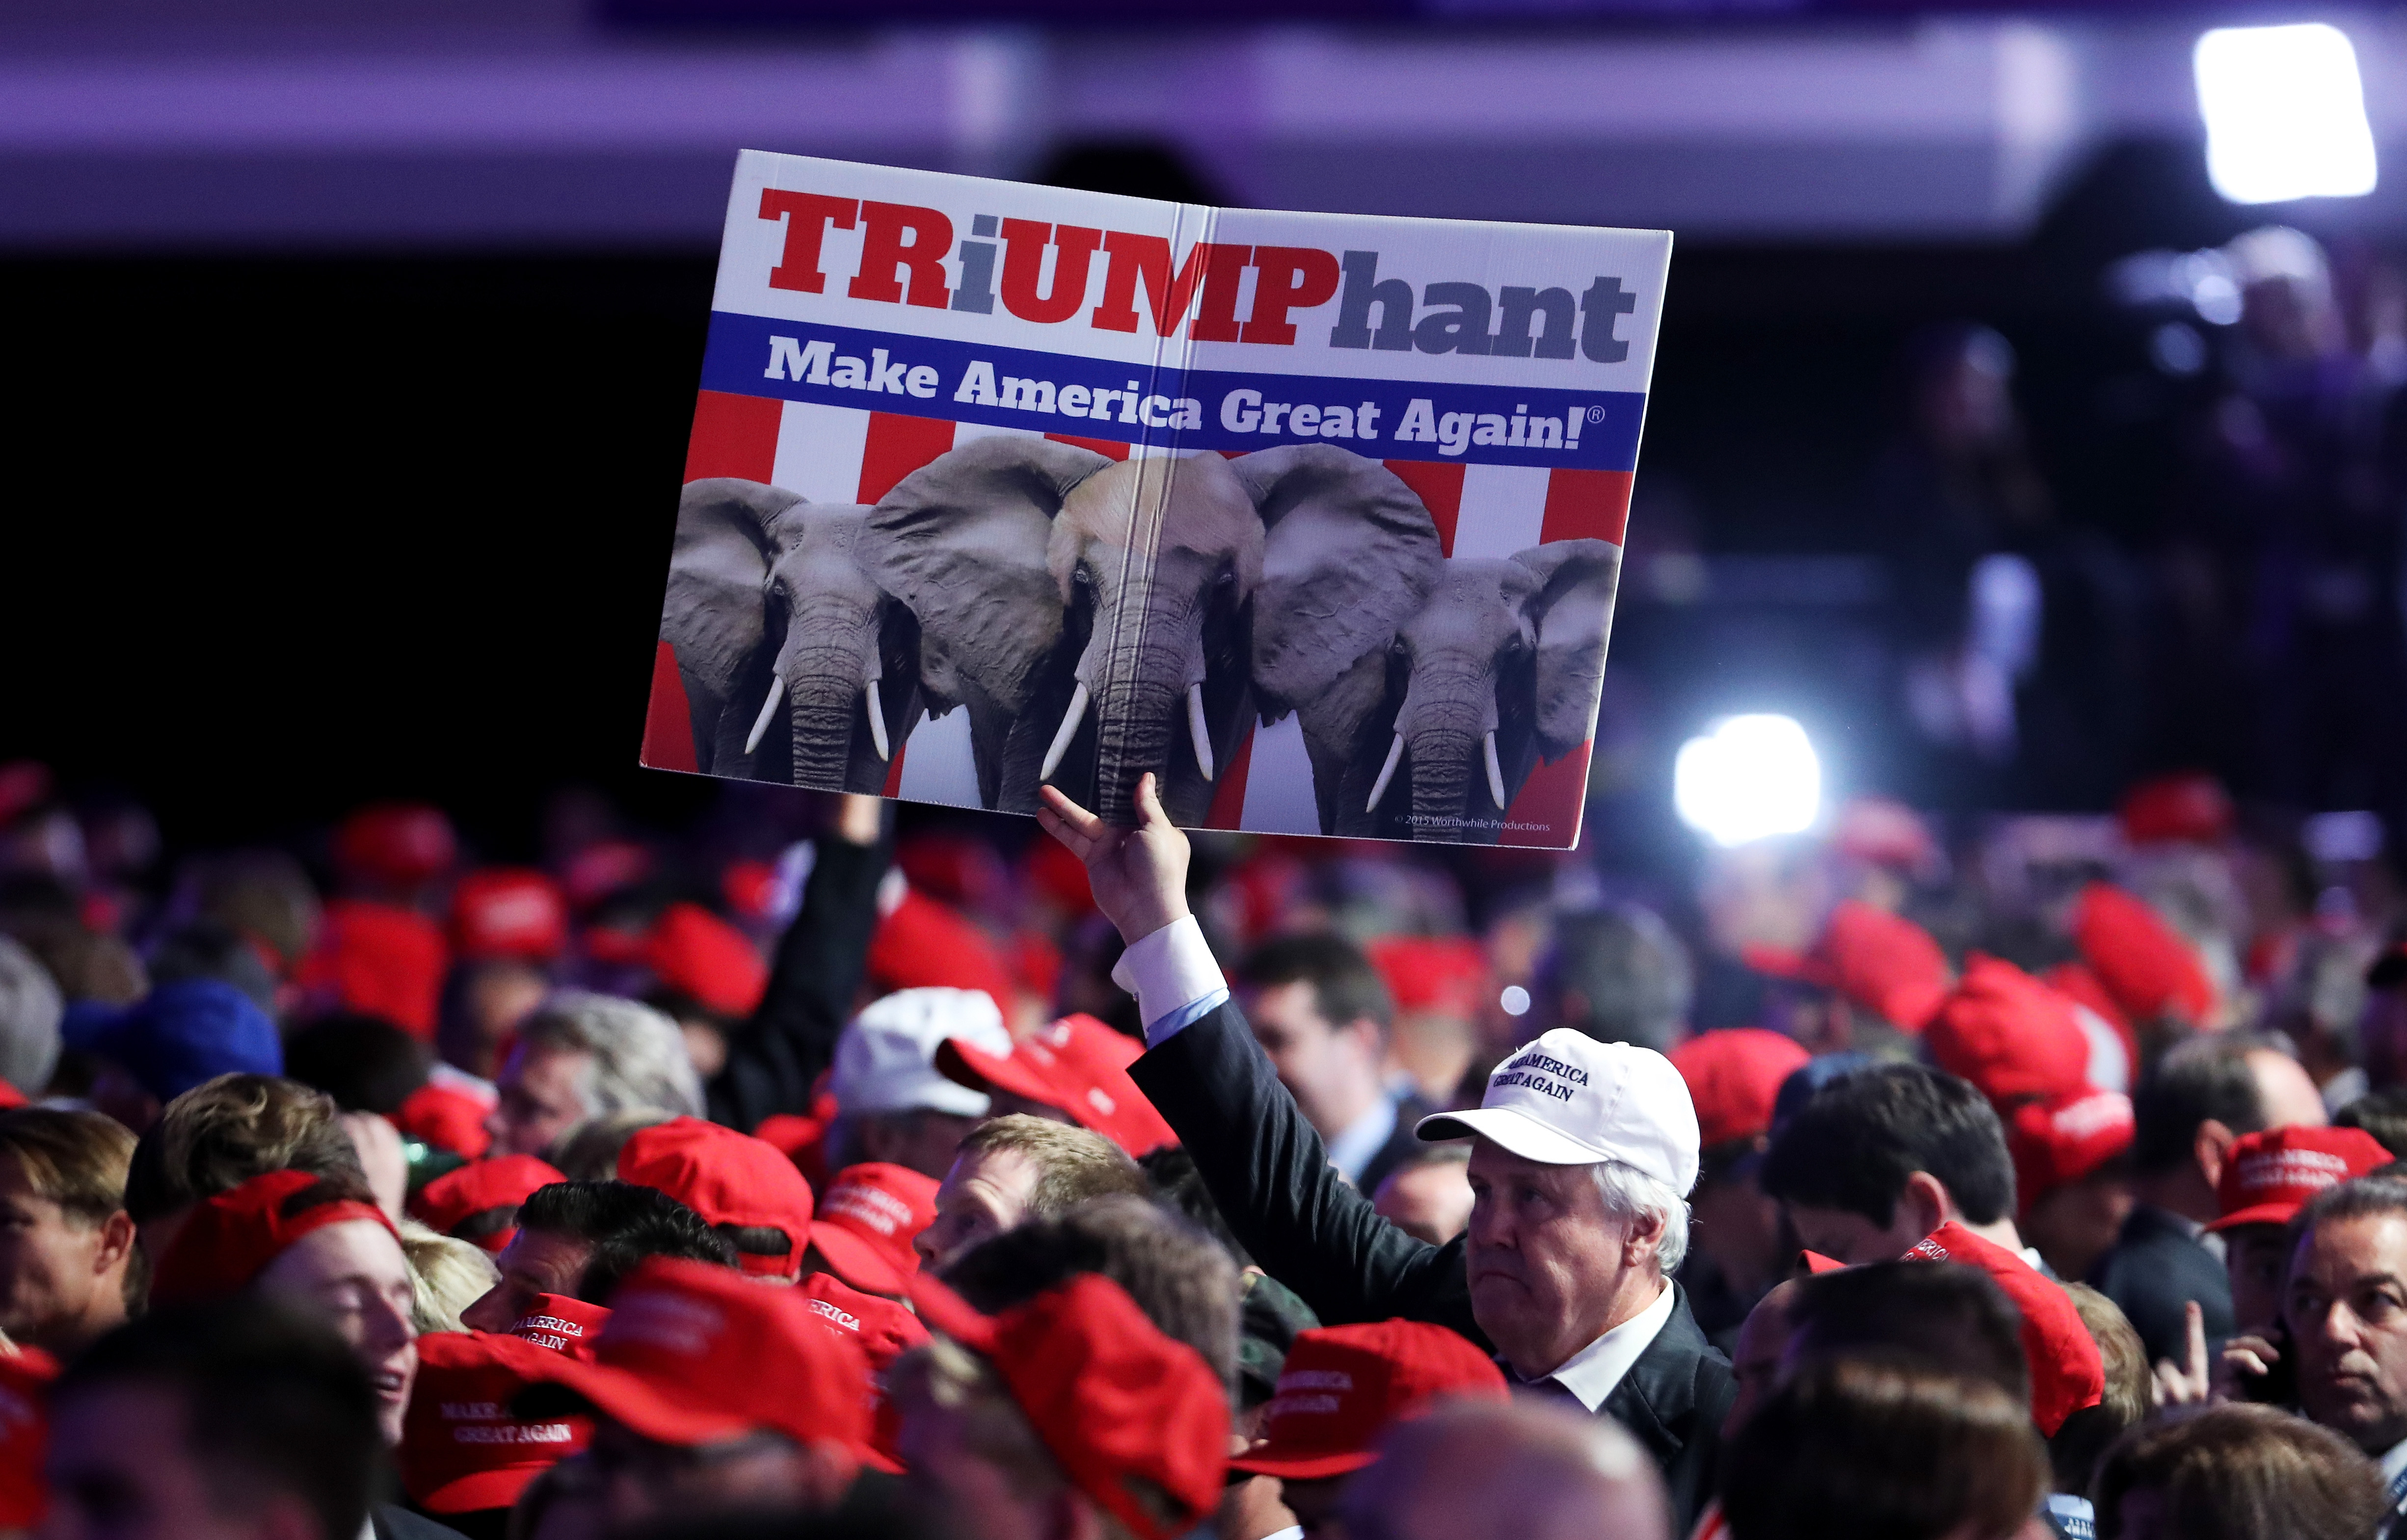 A supporter holds up a sign in support of Republican presidential nominee Donald Trump during the election night event at the New York Hilton Midtown on Nov. 8, 2016.